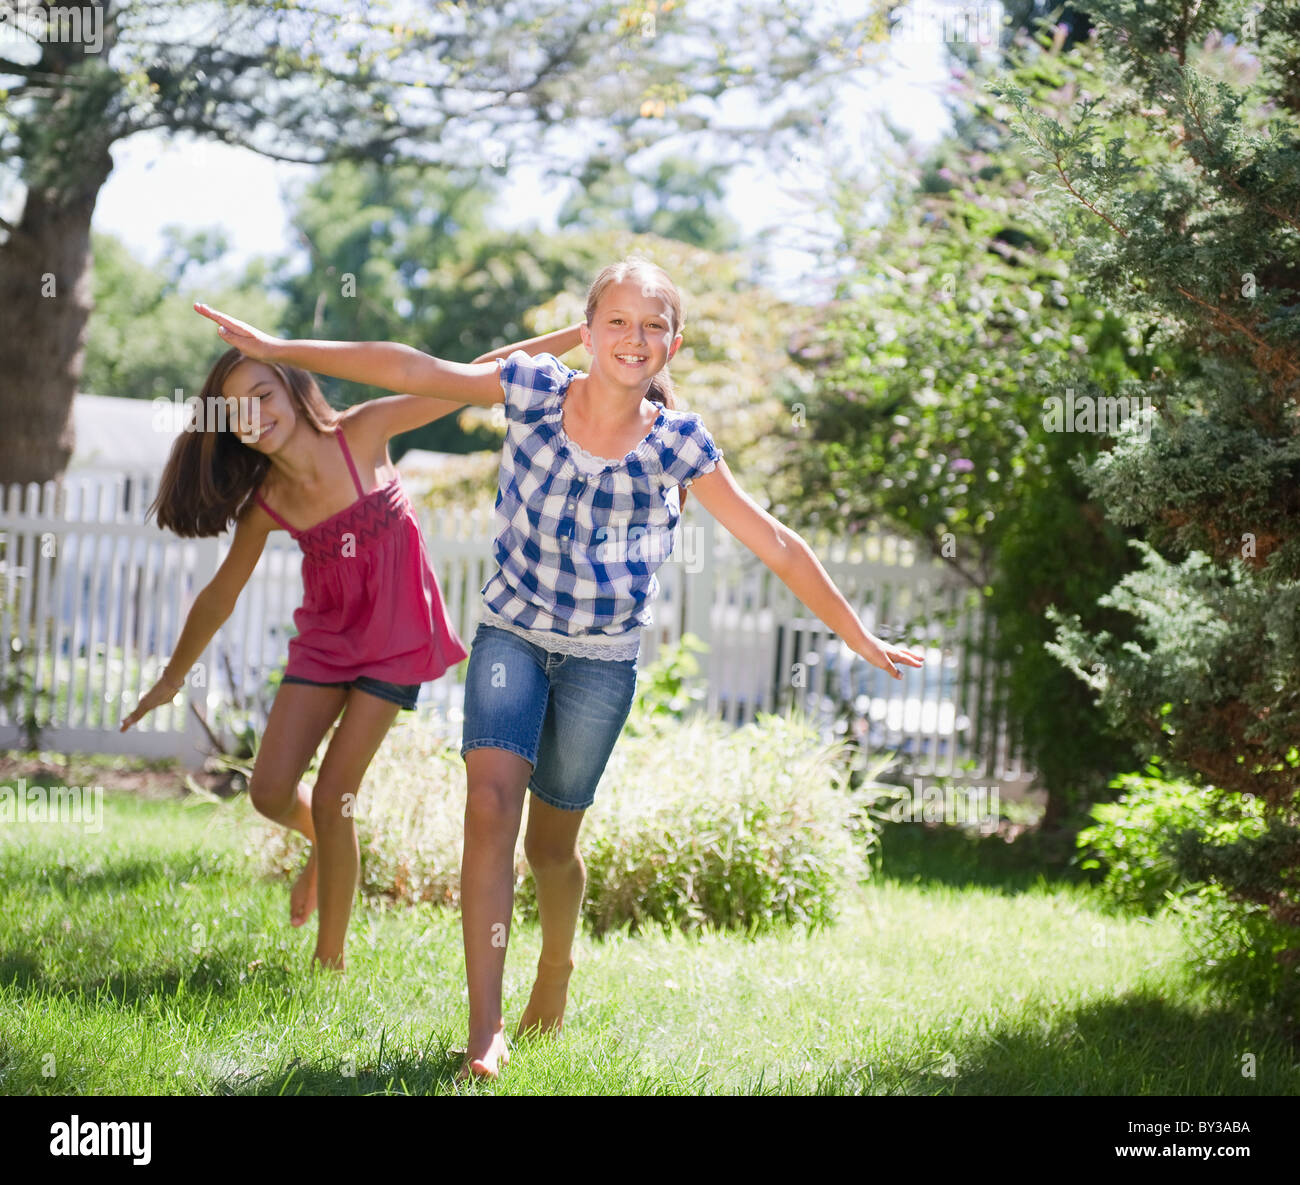 http://c8.alamy.com/comp/BY3ABA/usa-new-york-two-girls-10-11-10-11-playing-in-backyard-BY3ABA.jpg